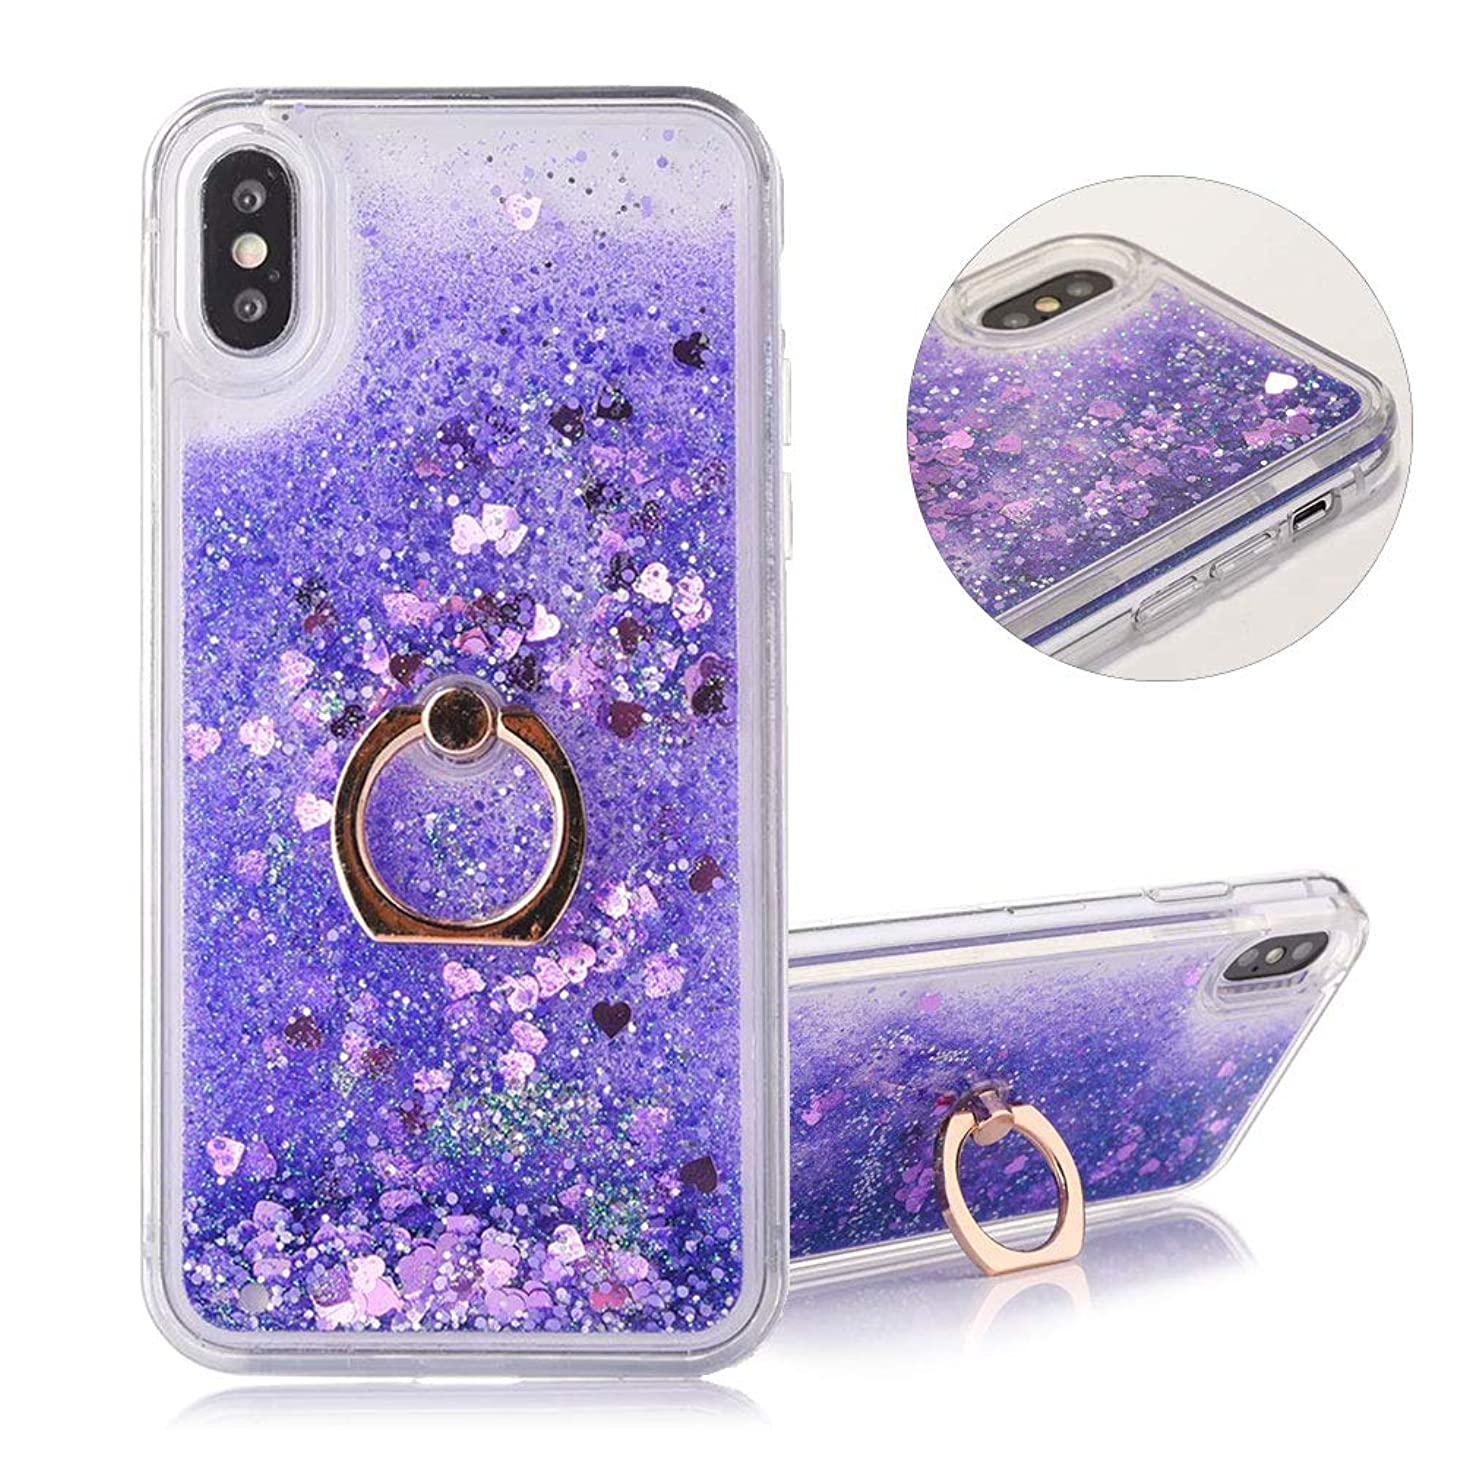 DasKAn Floating Liquid Glitter Case for iPhone Xs Max with Finger Holder Ring Stand,Bling Sparkle Flowing Hearts Sequins Moving Quicksand Clear Back Cover Hard Plastic Protective Phone Case,Purple